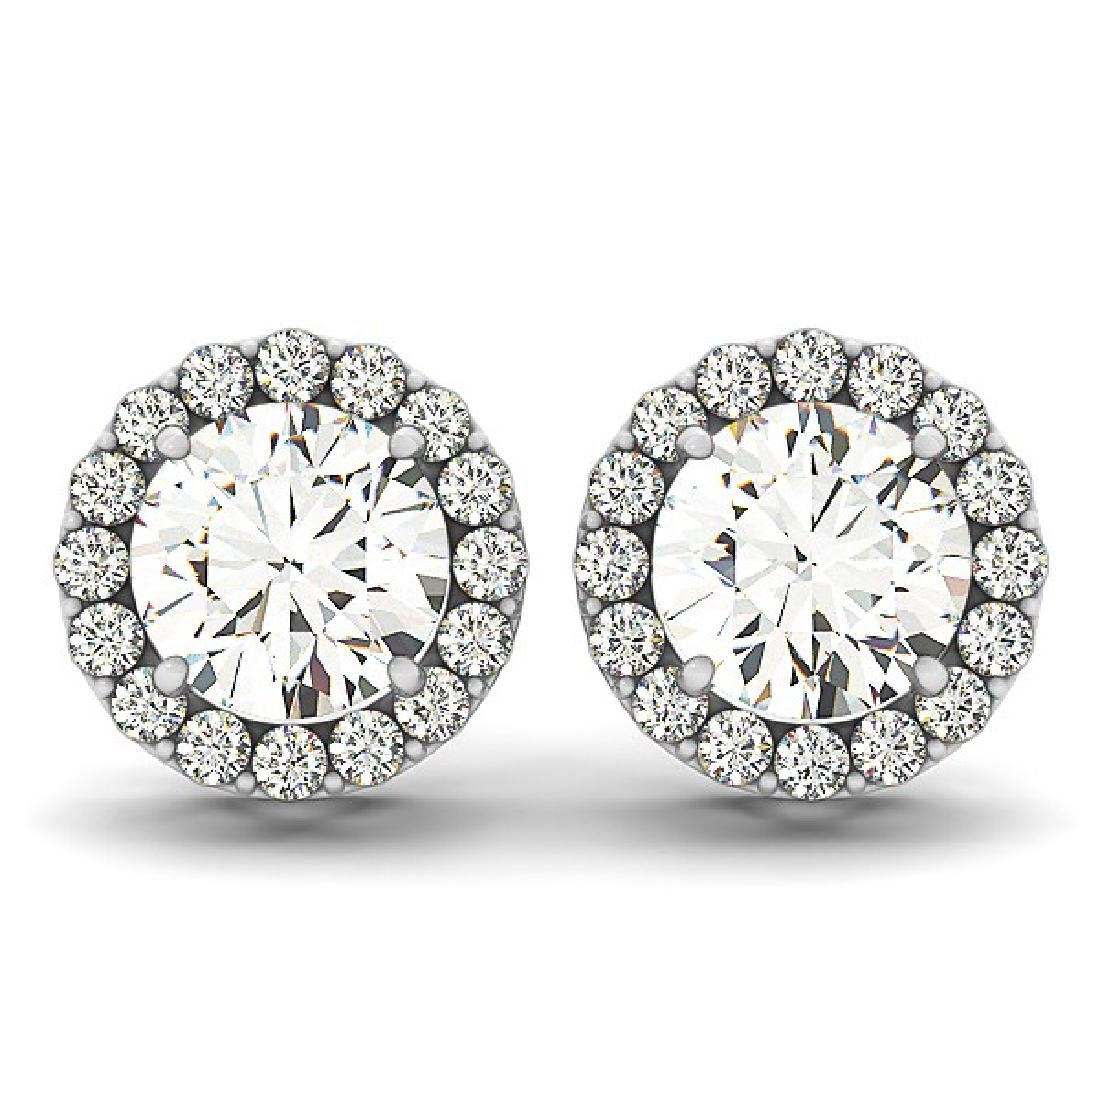 4.40 CTW Diamond Solitaire Earrings VS/SI Certified 14K - 2